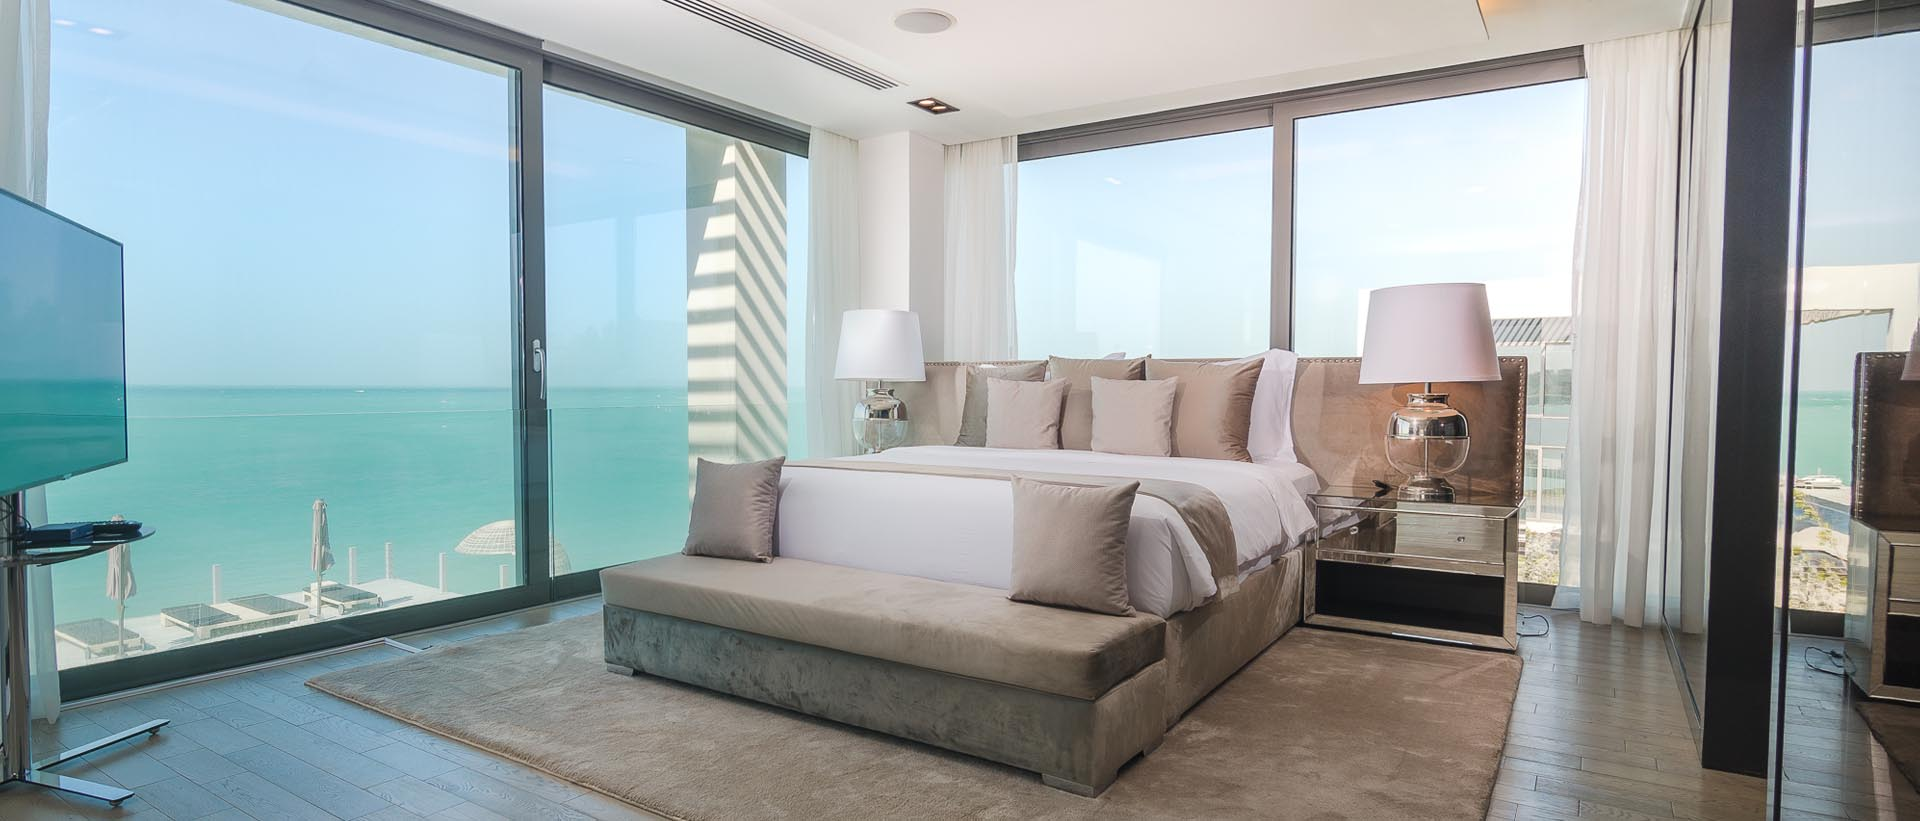 UPSTAIRS GUEST BEDROOM WITH KING BED AND UNRIVALED OCEAN VIEWS